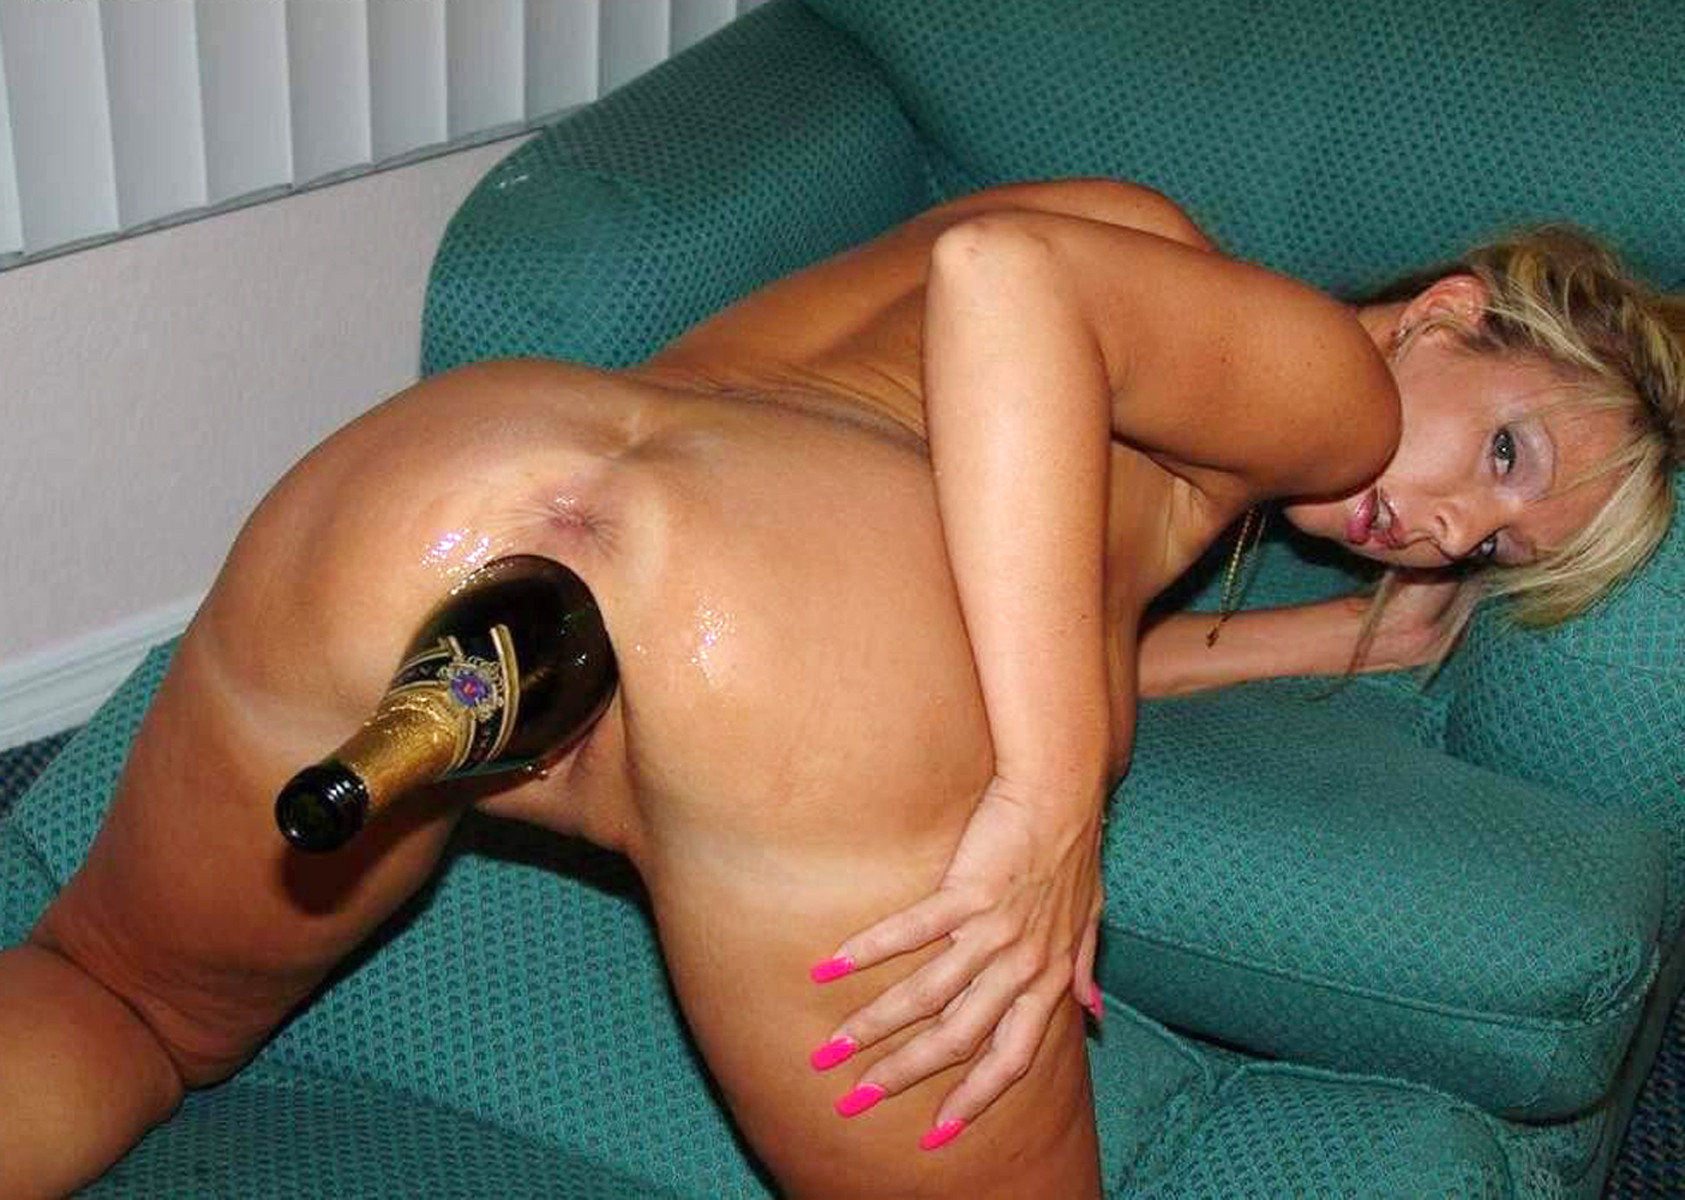 Big bottle anal prolapse